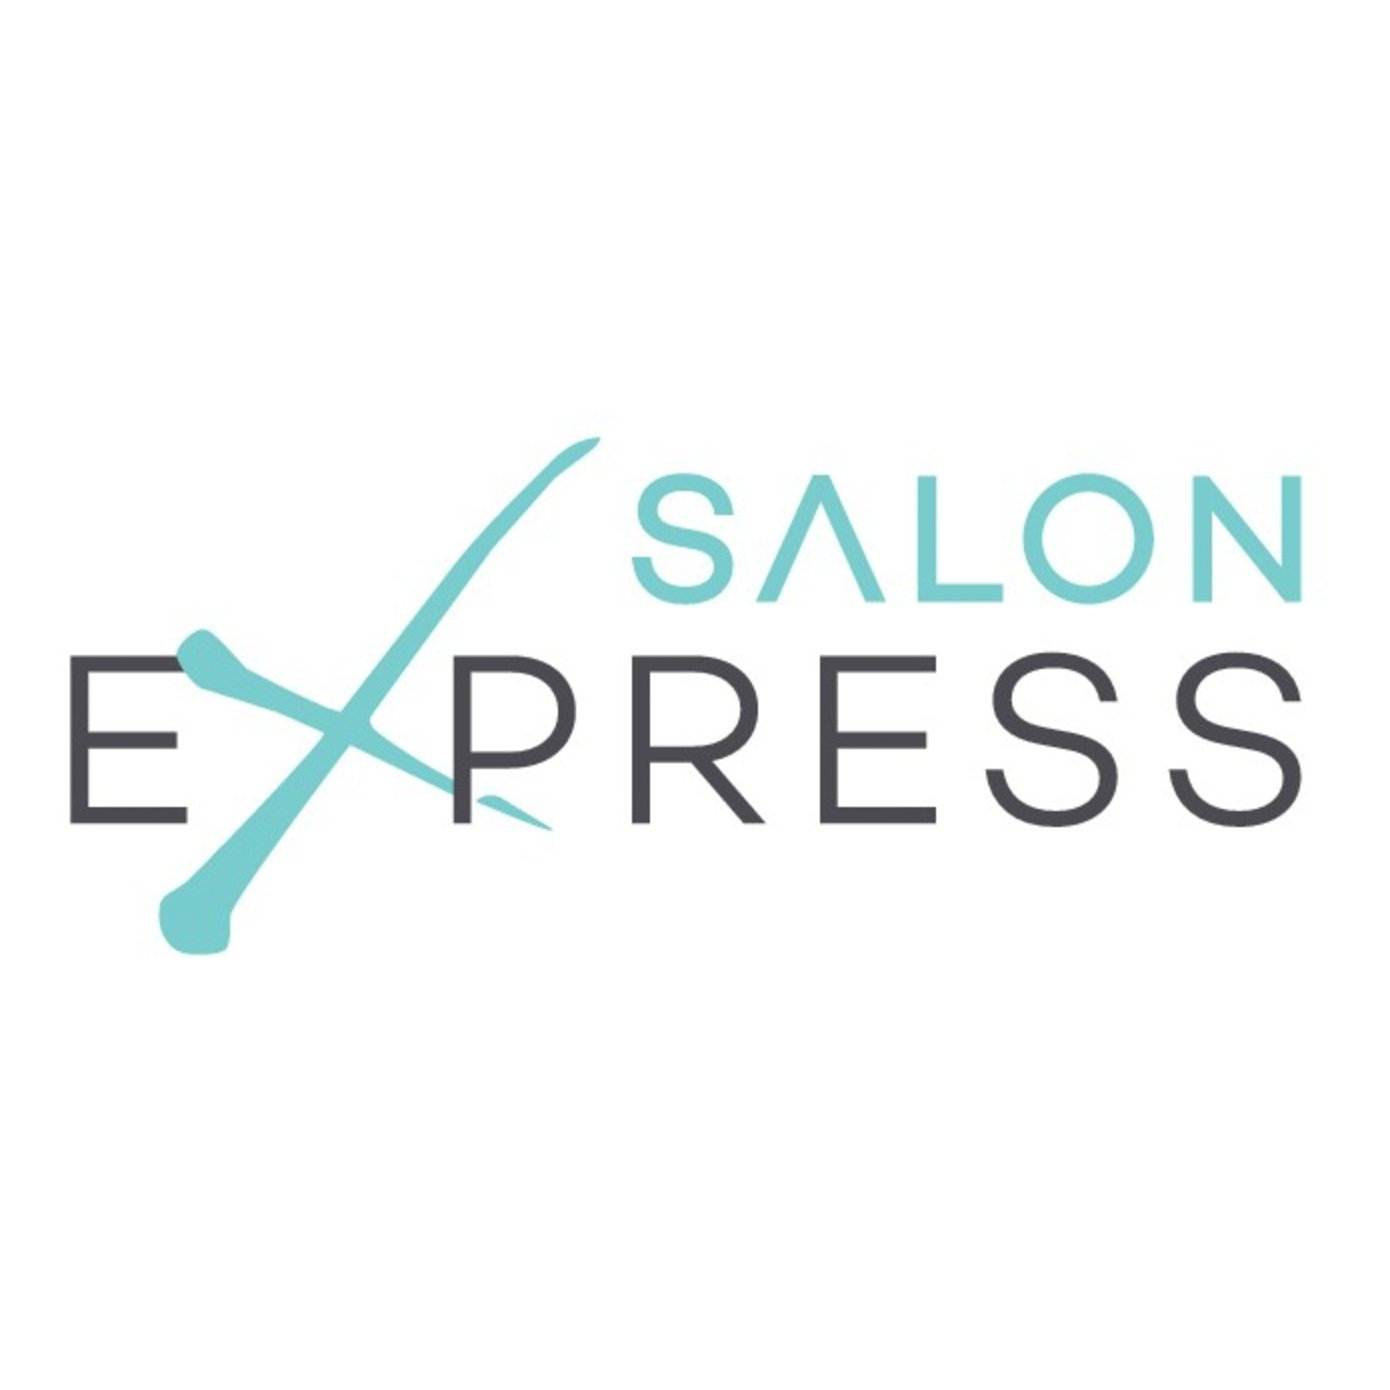 Salon express salonexpressirl twitter for 365 salon success